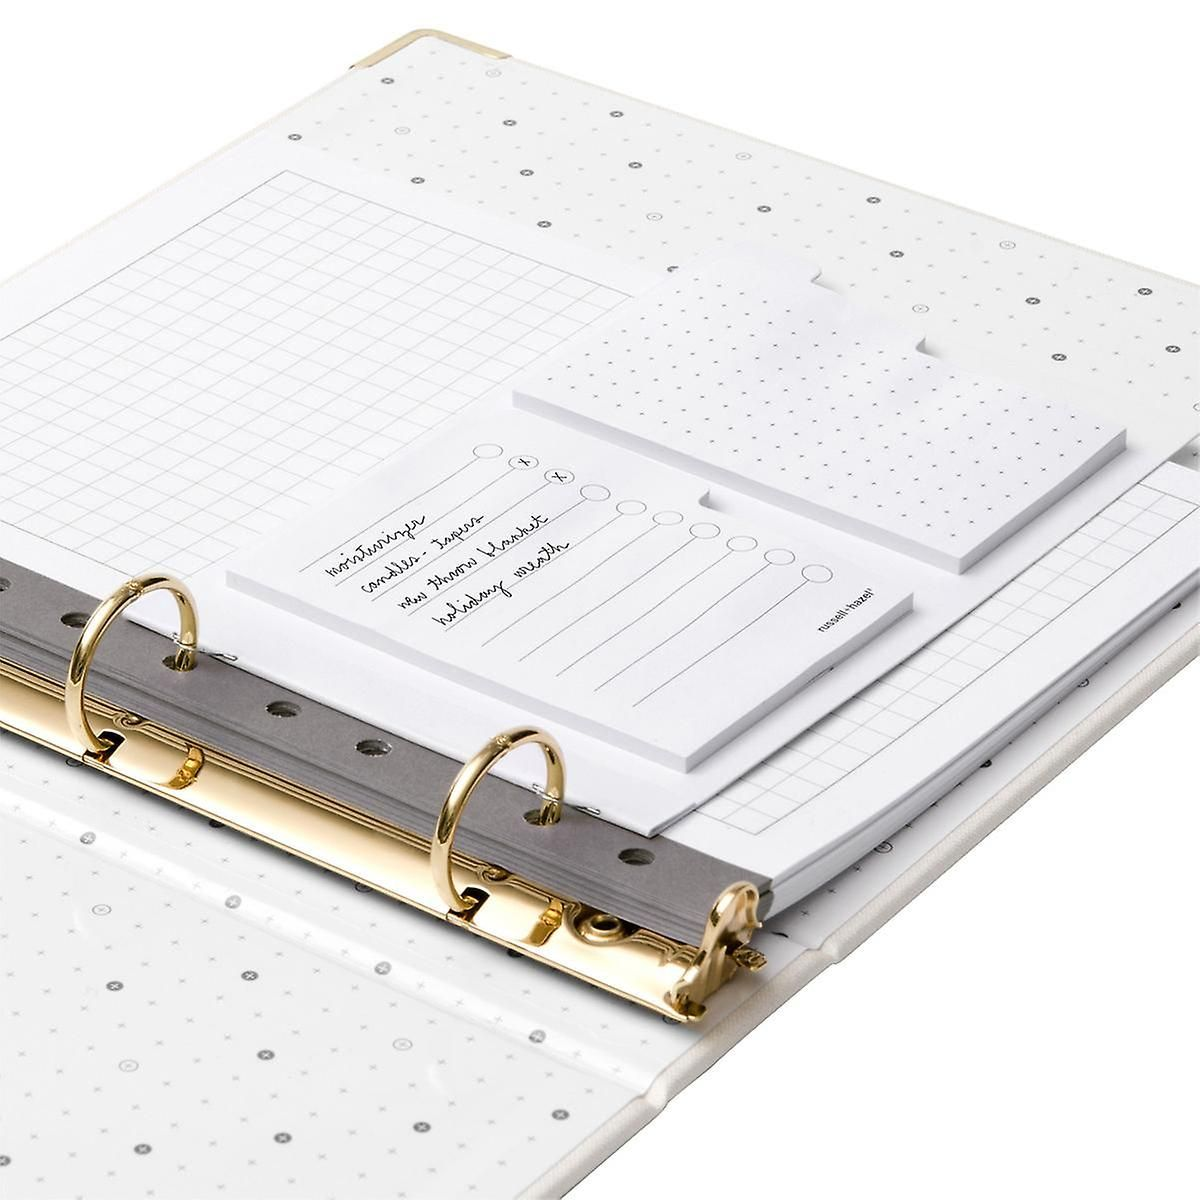 Russell Hazel 1 Gold Vegan Leather Mini Three Ring Binder In 2020 Three Ring Binders Adhesive Notes Weekly Planner Sheets